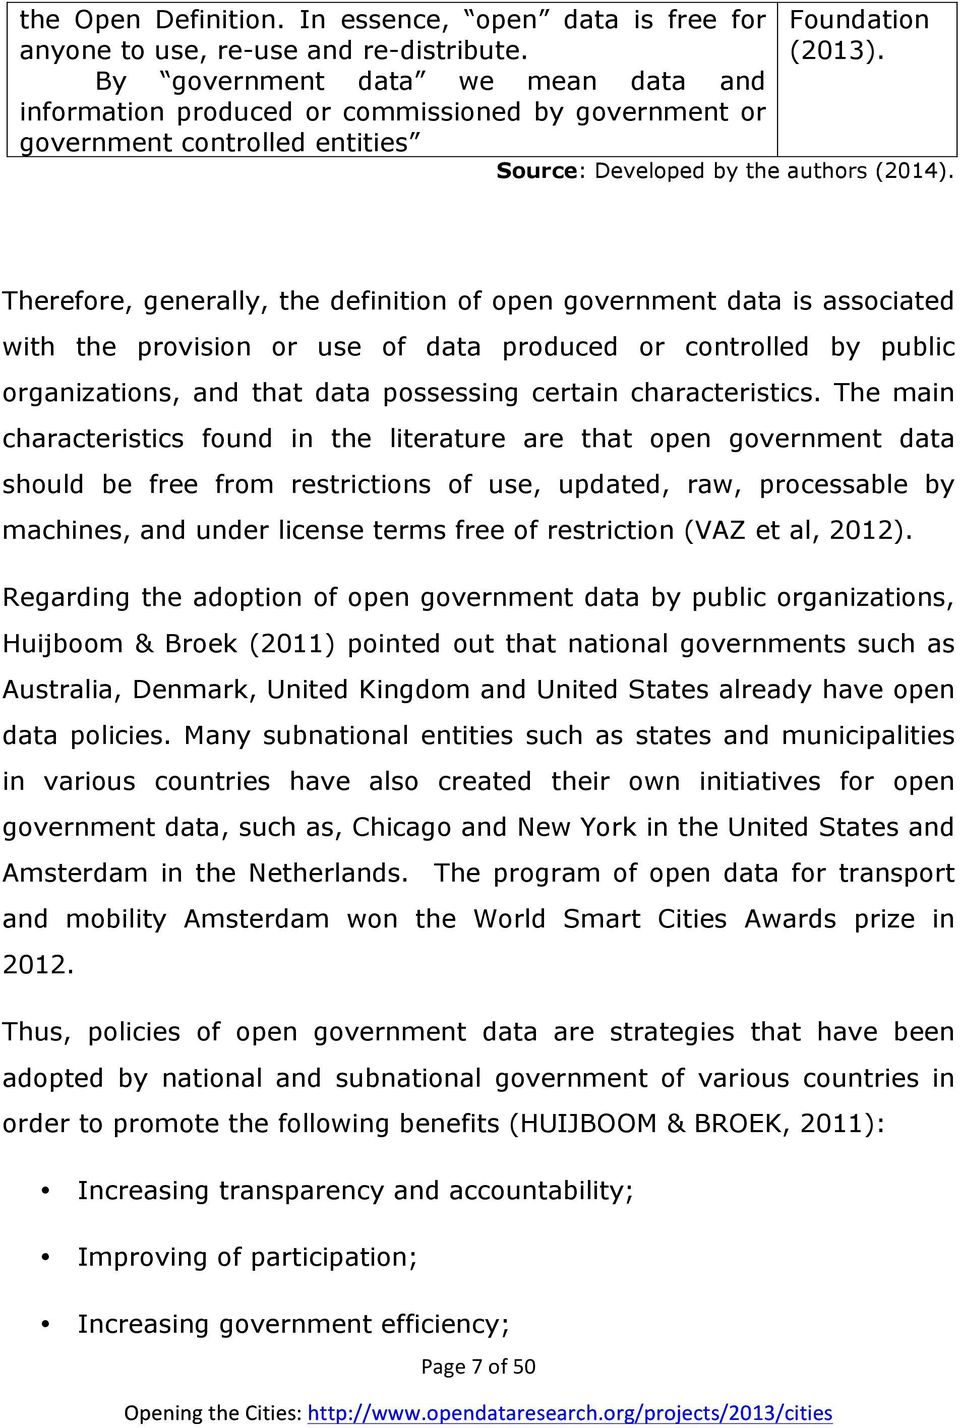 Therefore, generally, the definition of open government data is associated with the provision or use of data produced or controlled by public organizations, and that data possessing certain